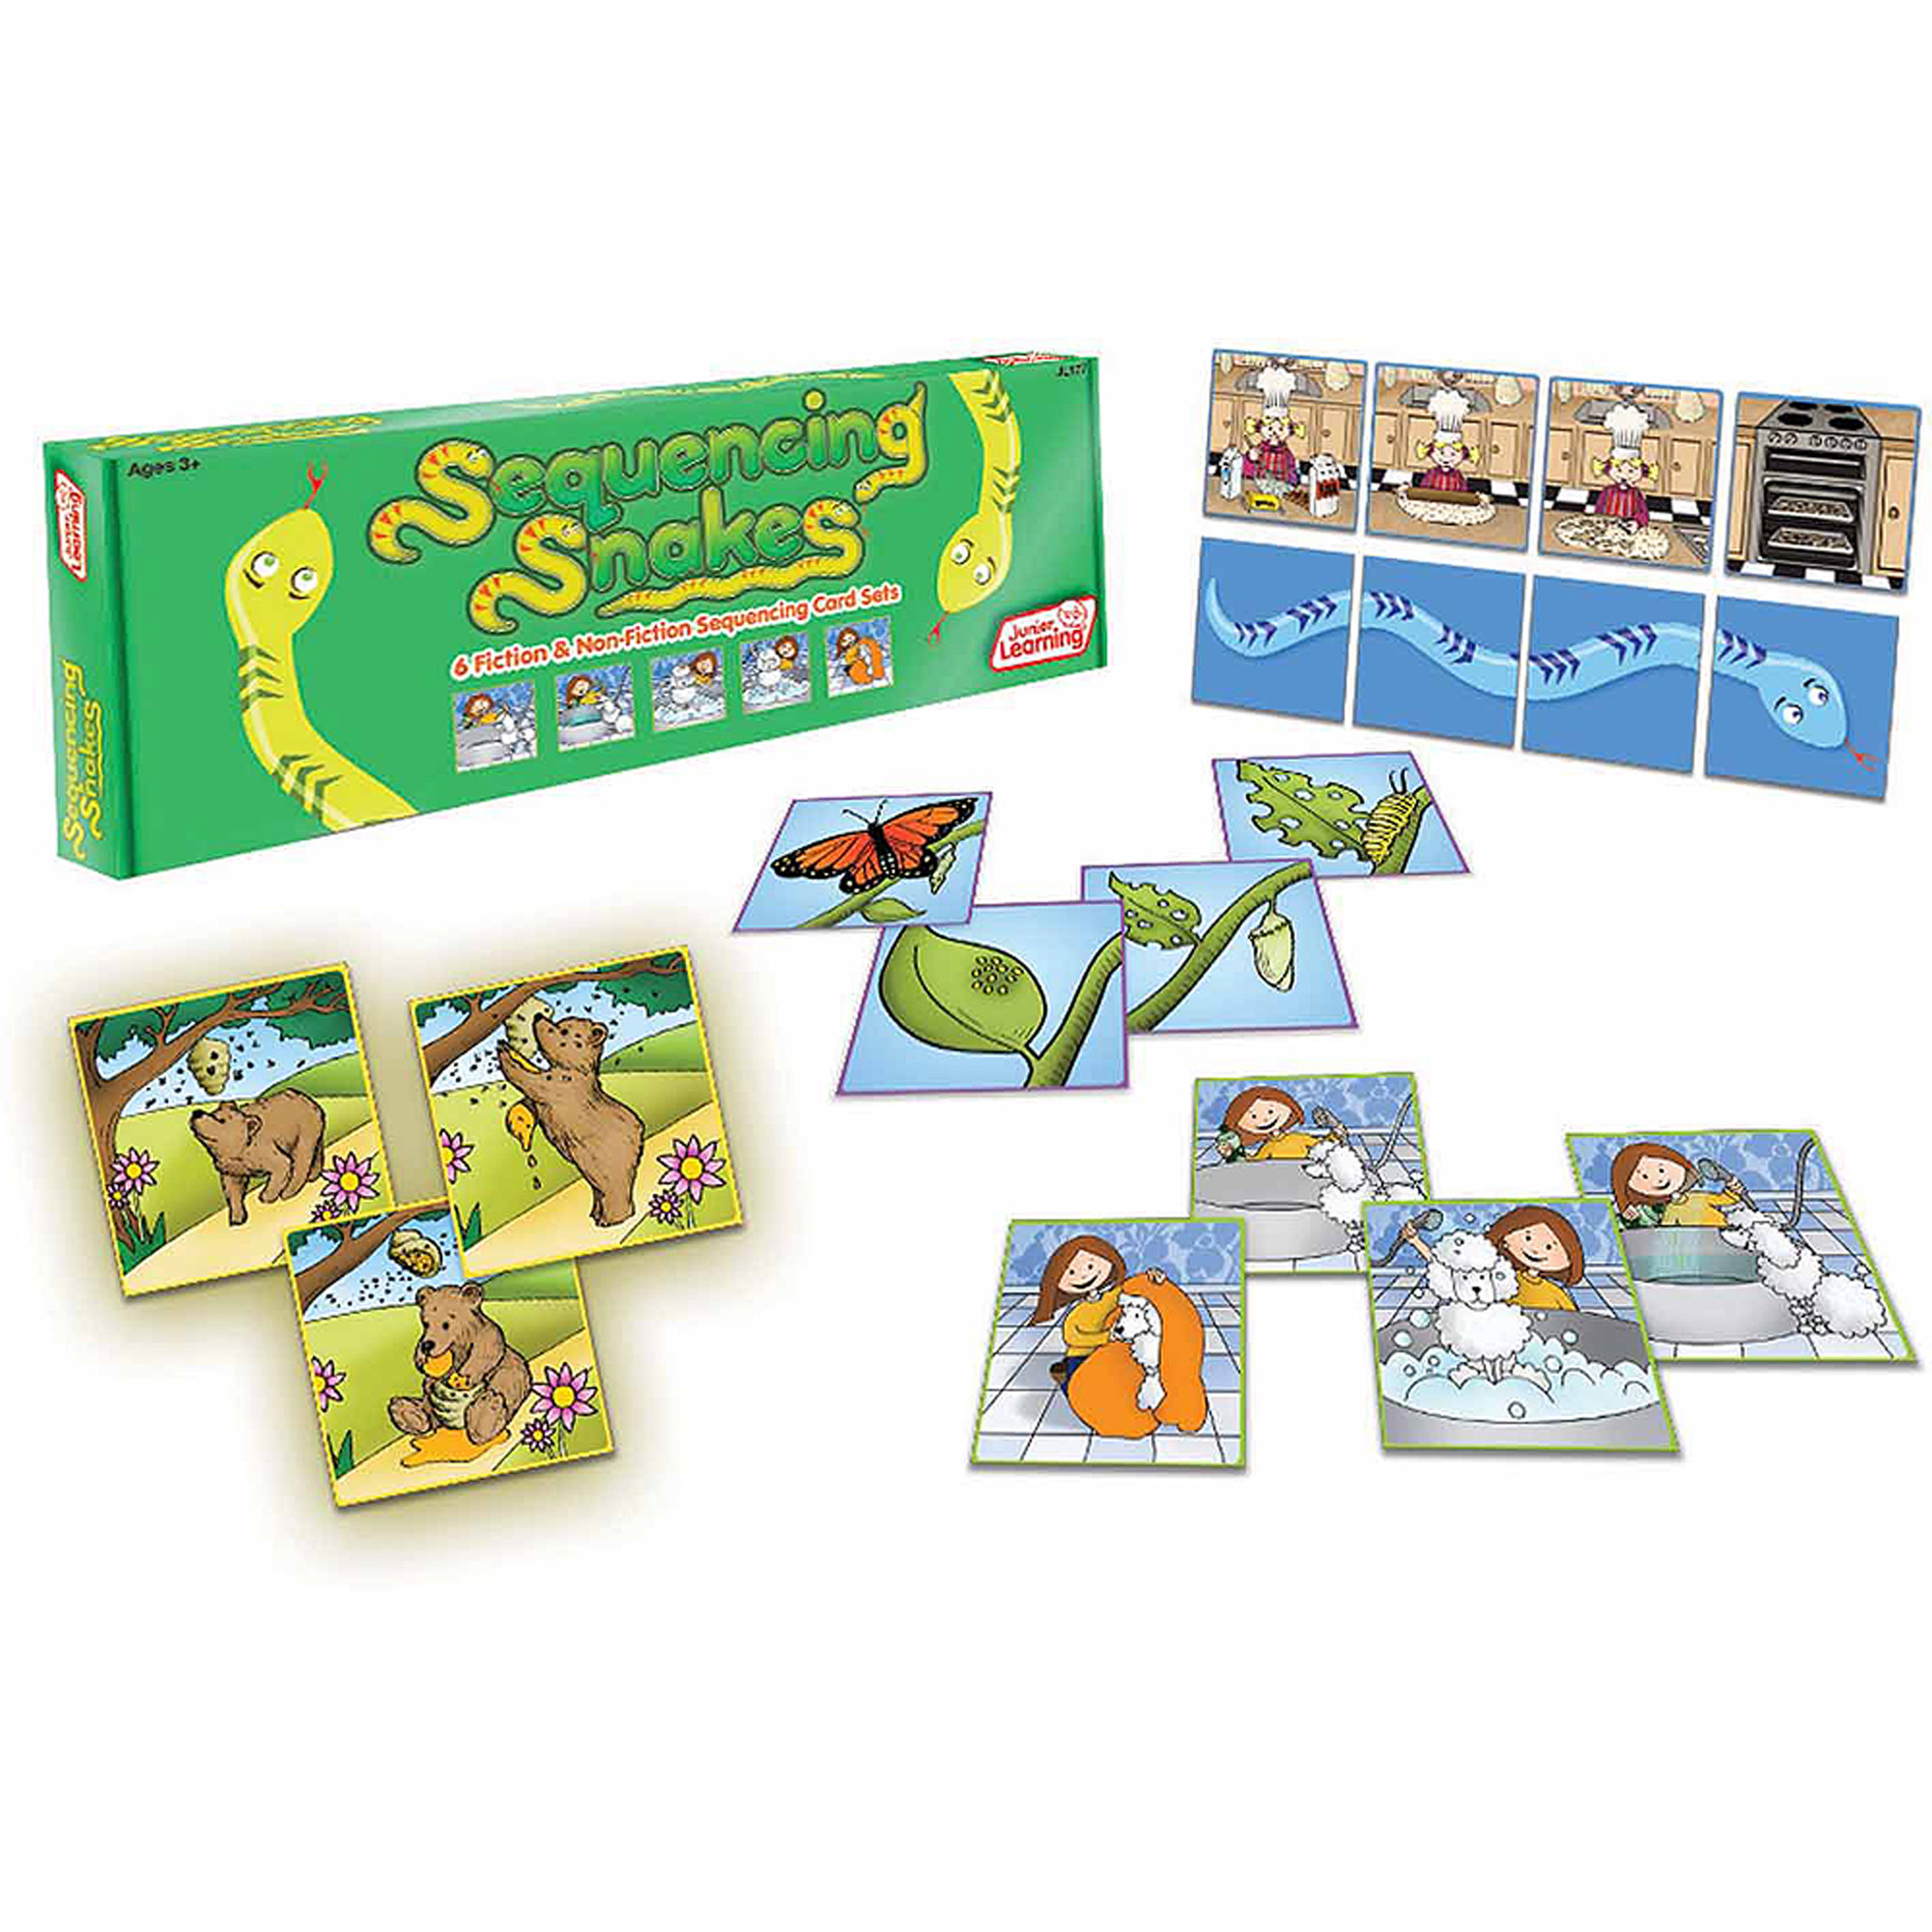 Junior Learning Sequencing Snakes, Develop Comprehension and Oral Language